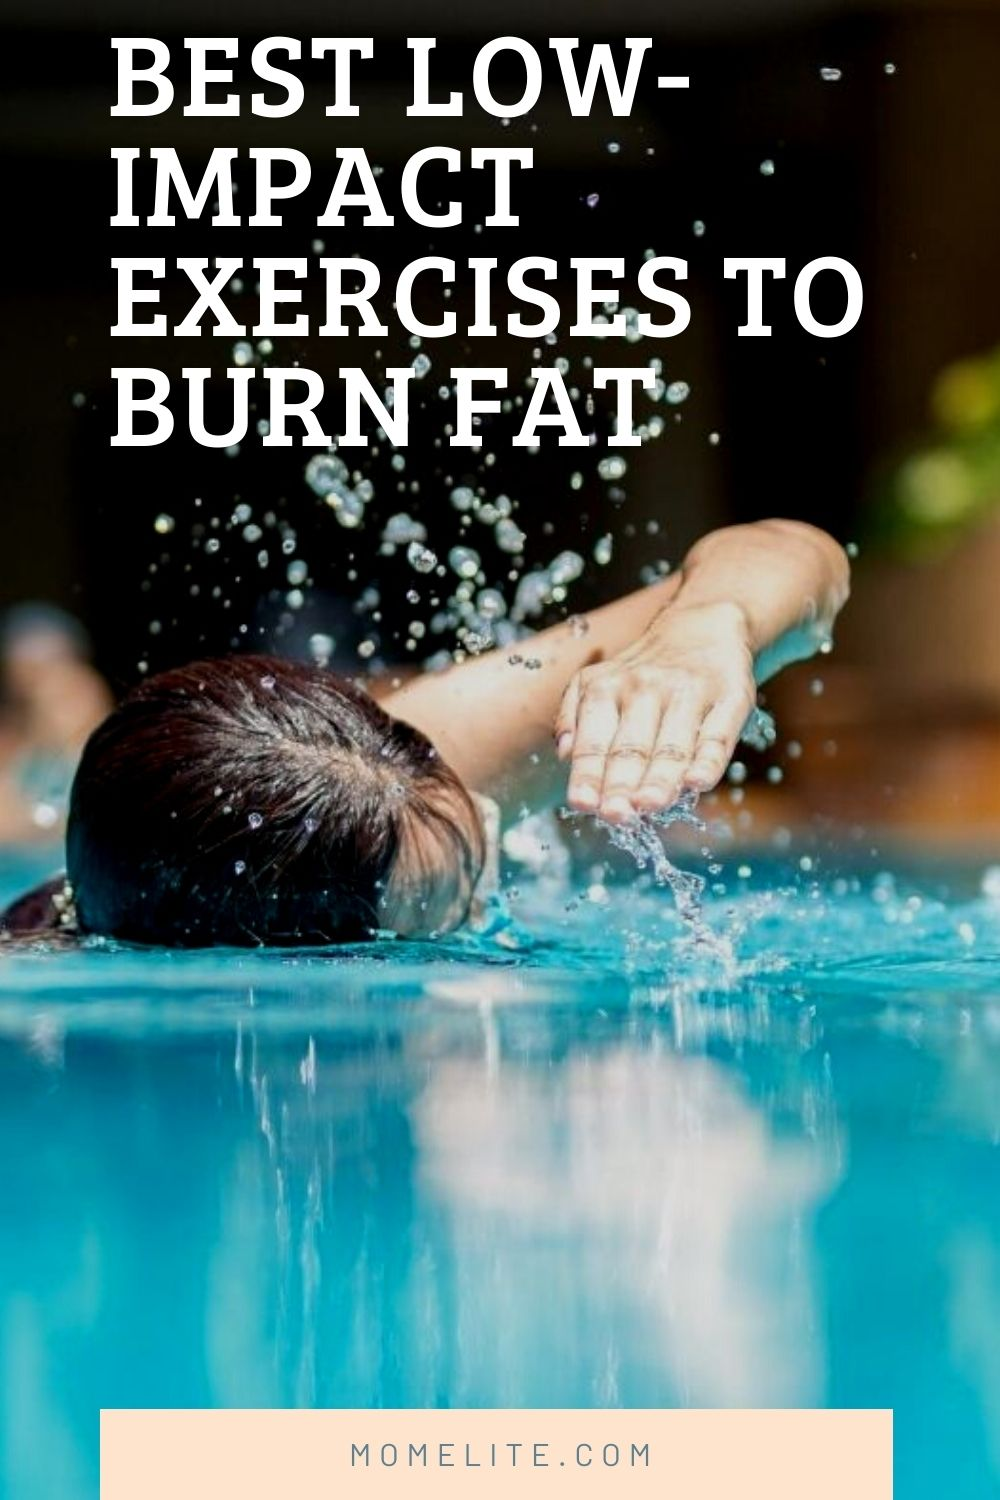 BEST LOW-IMPACT EXERCISES TO BURN FAT